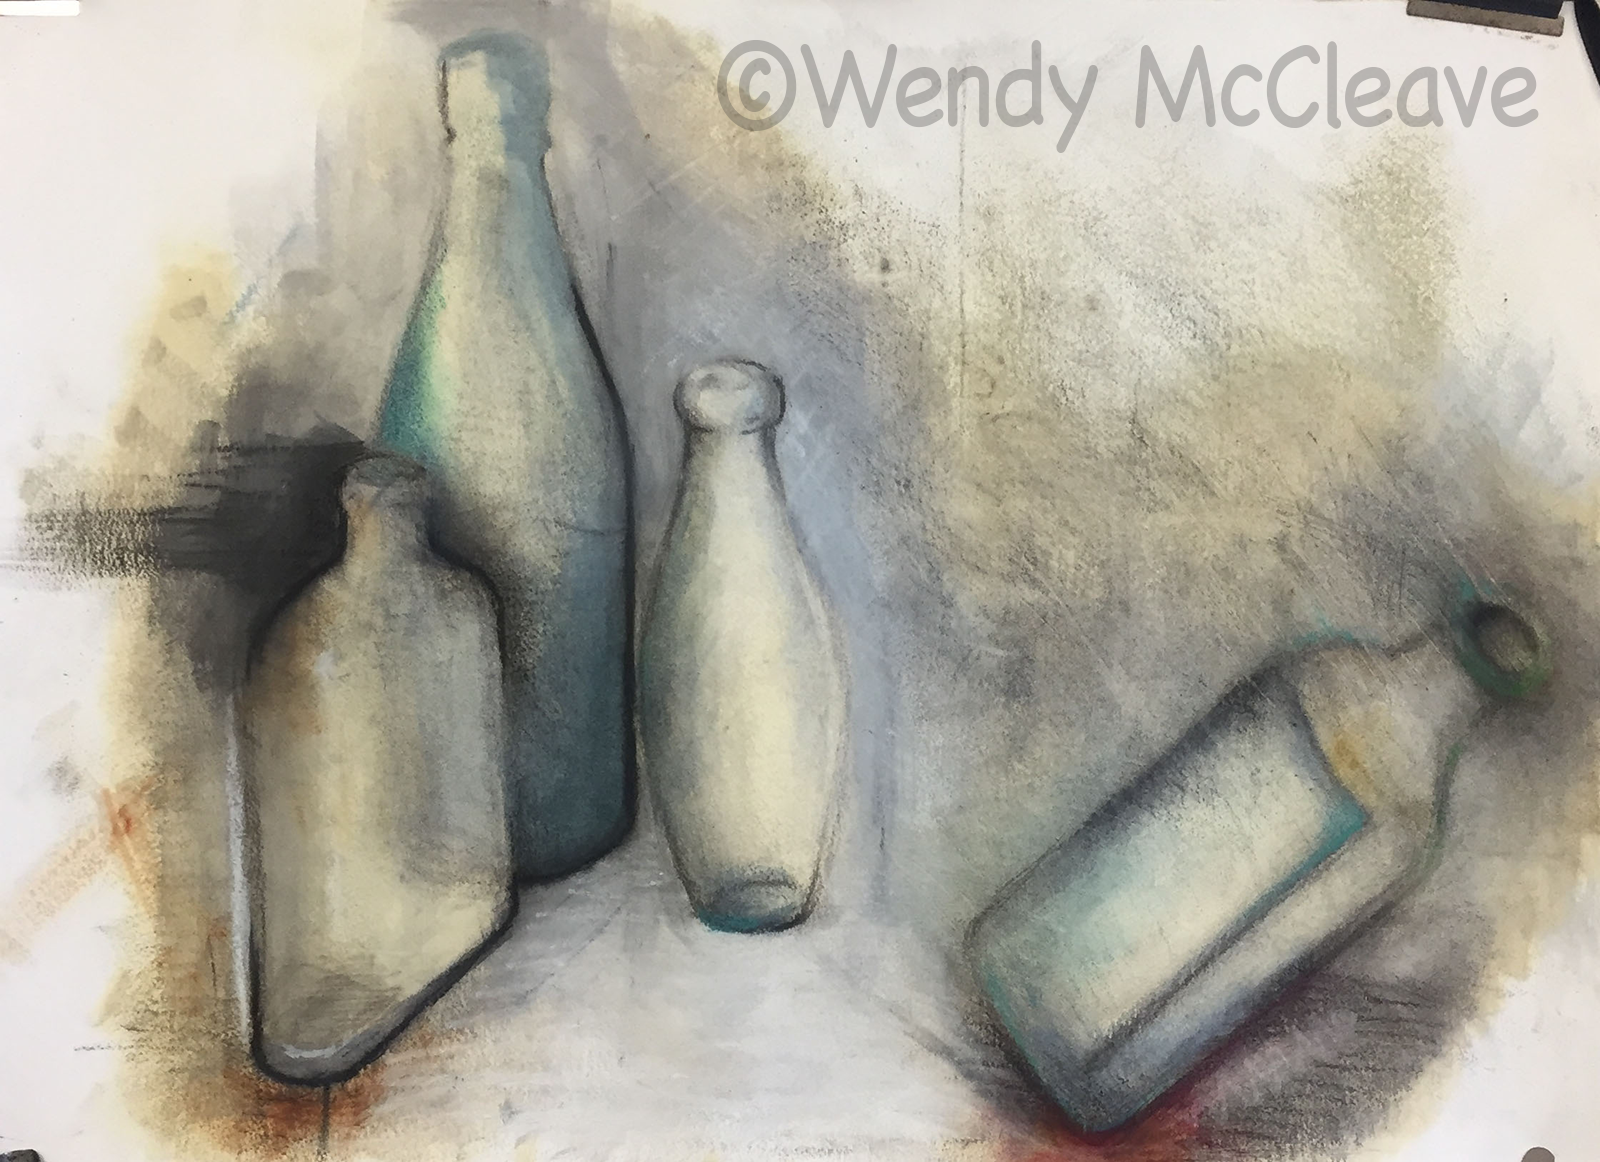 Mixed media Image of old bottles with one falling